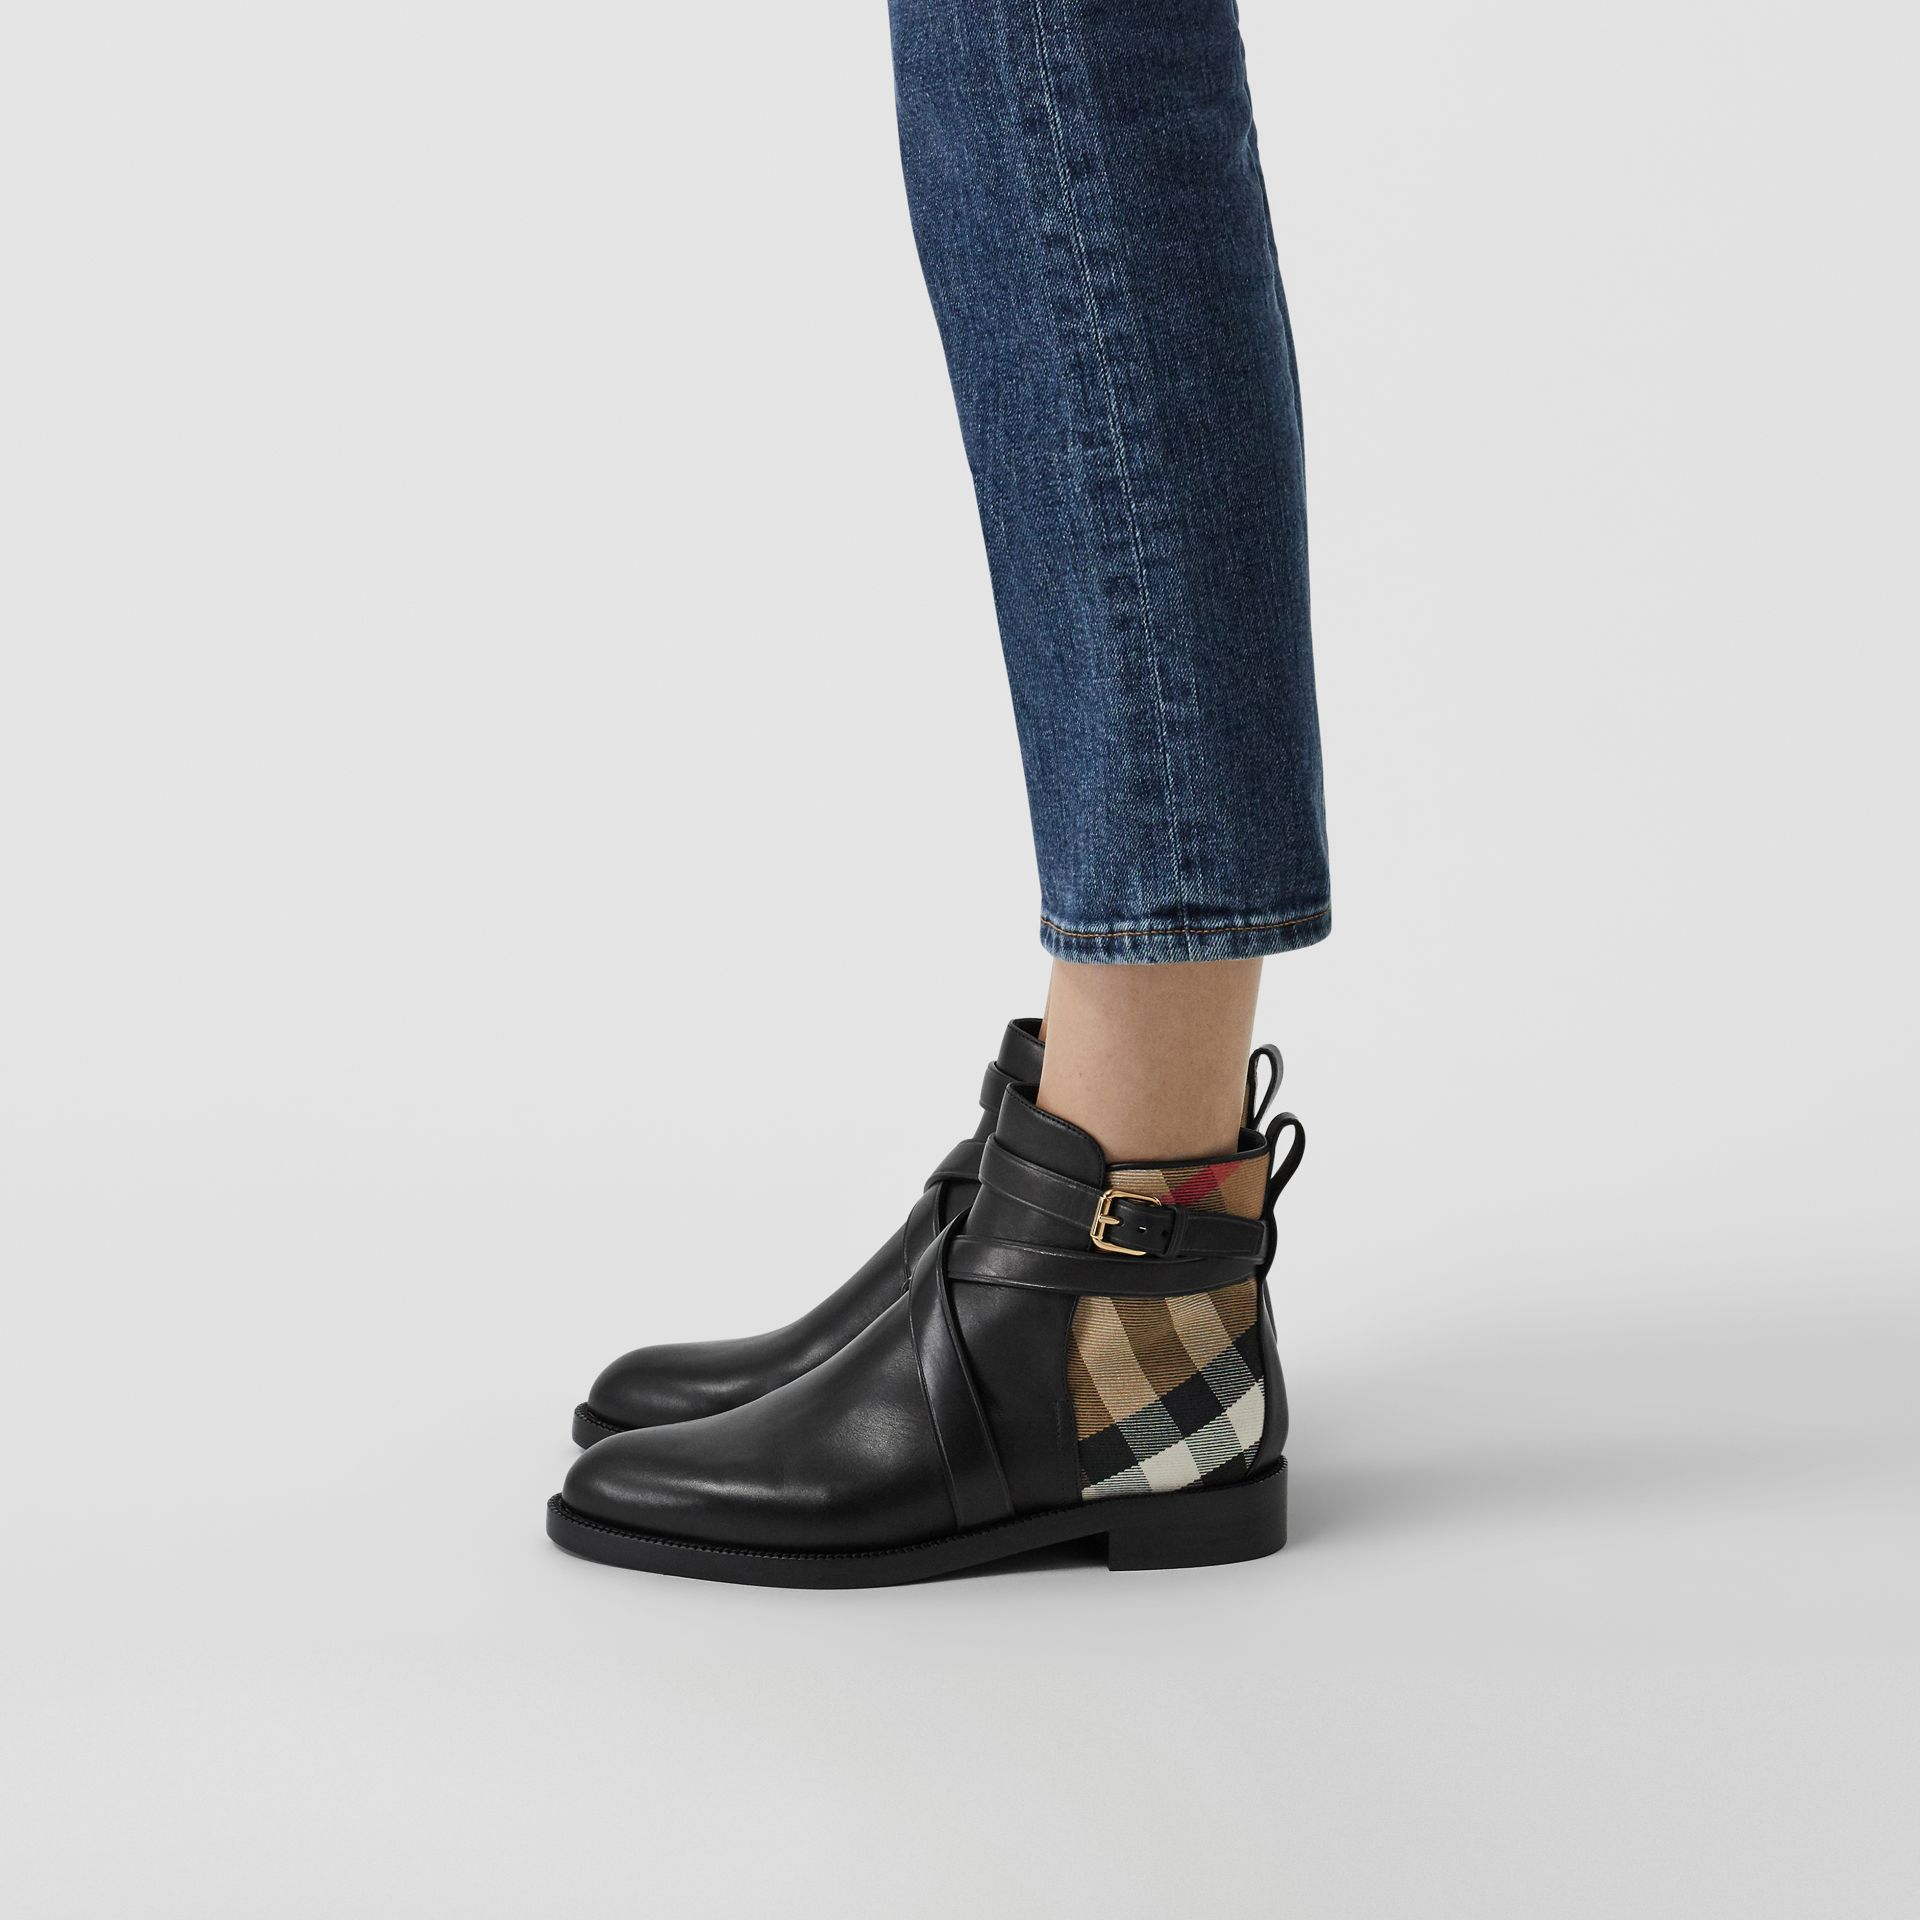 House Check and Leather Ankle Boots in Black - Women | Burberry Australia - gallery image 2